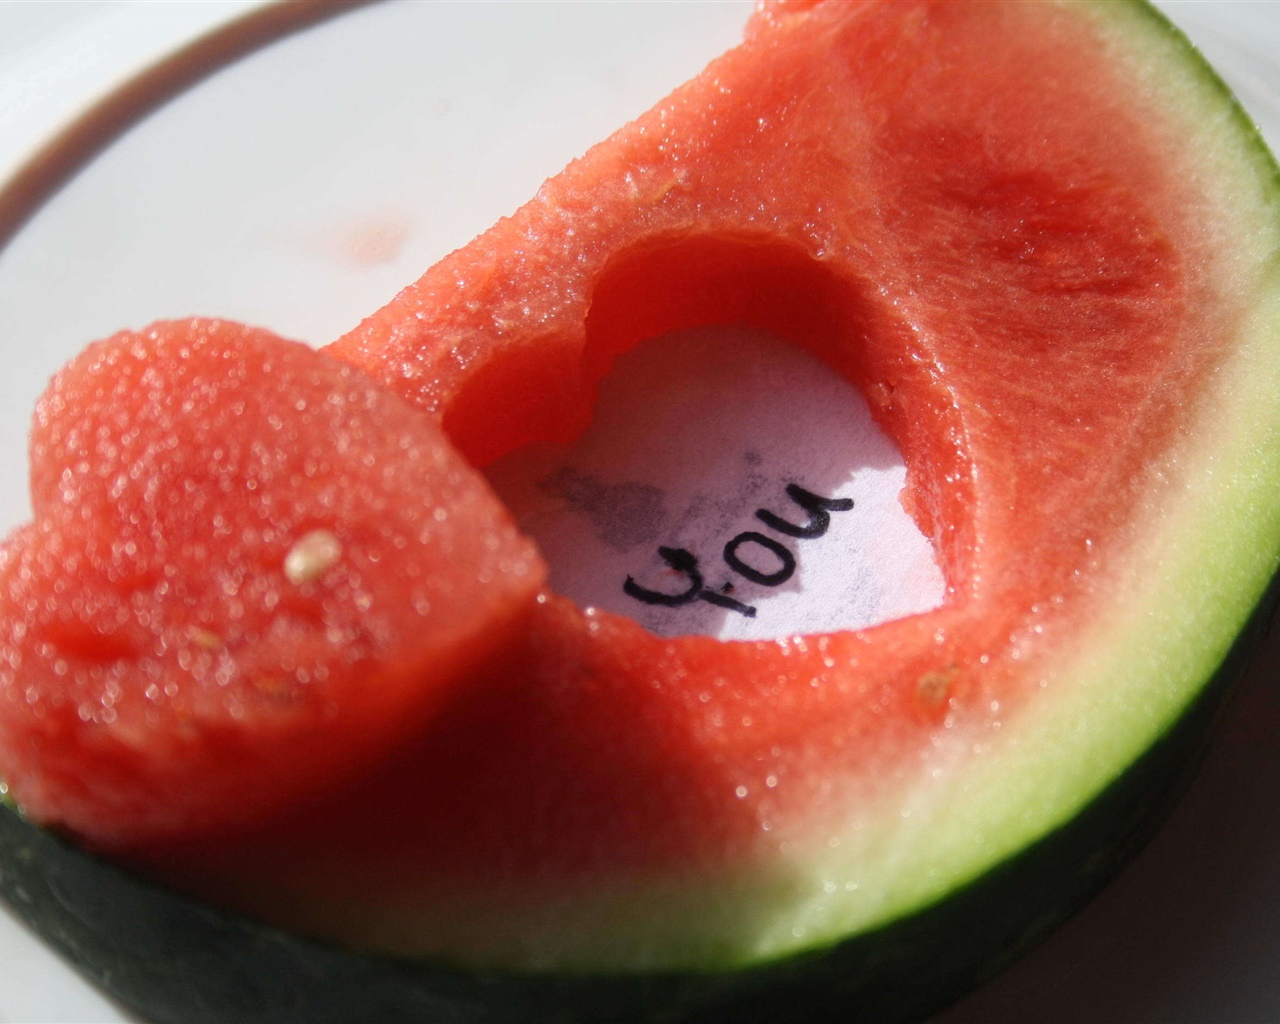 Watermelon, love hearts 1280x1024 wallpaper